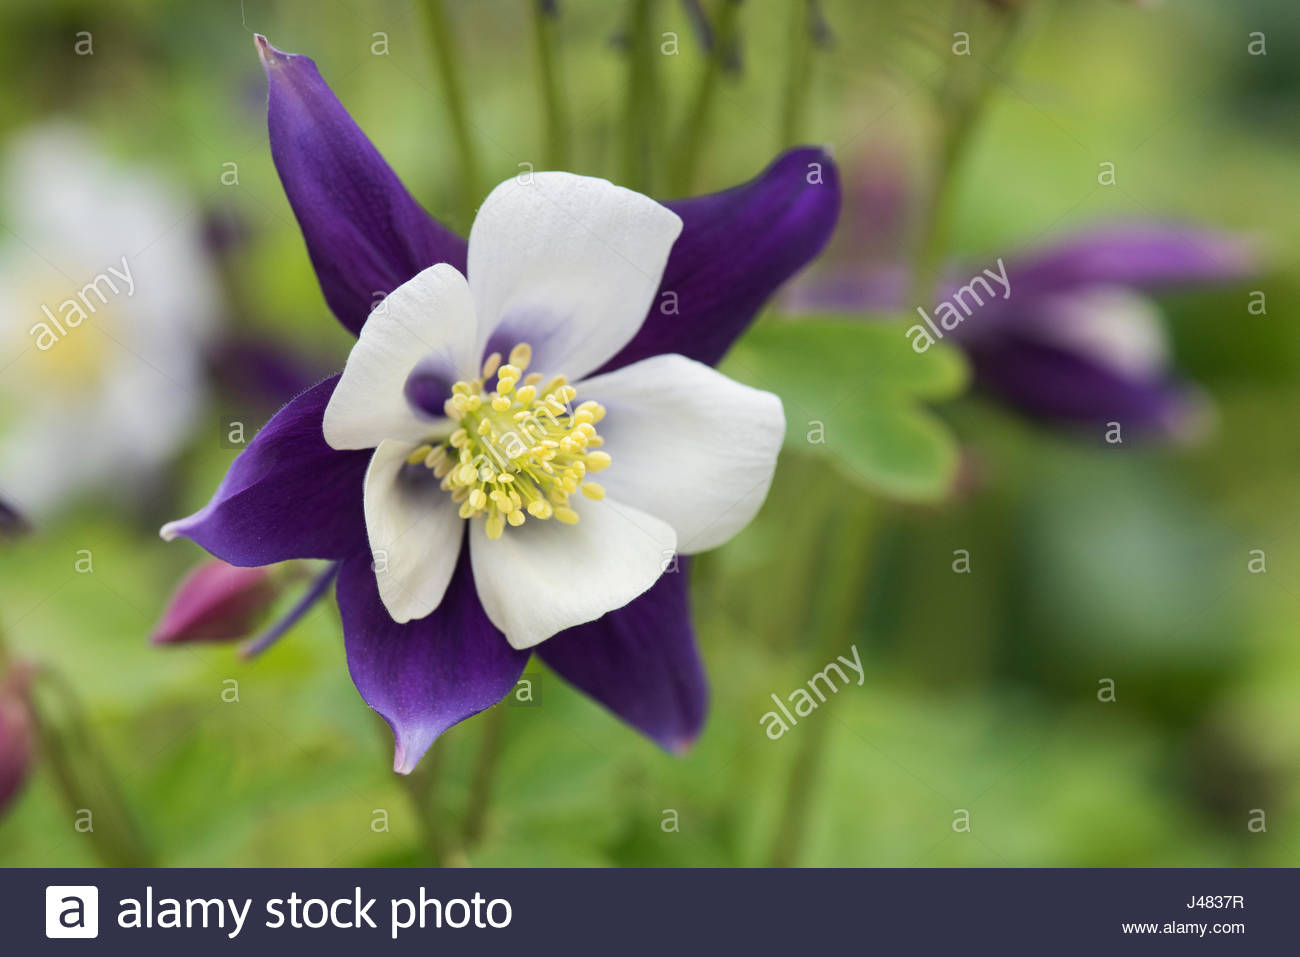 Cool white columbine flower contemporary wedding and flowers aquilegia swan violet white columbine flower in an english izmirmasajfo Images